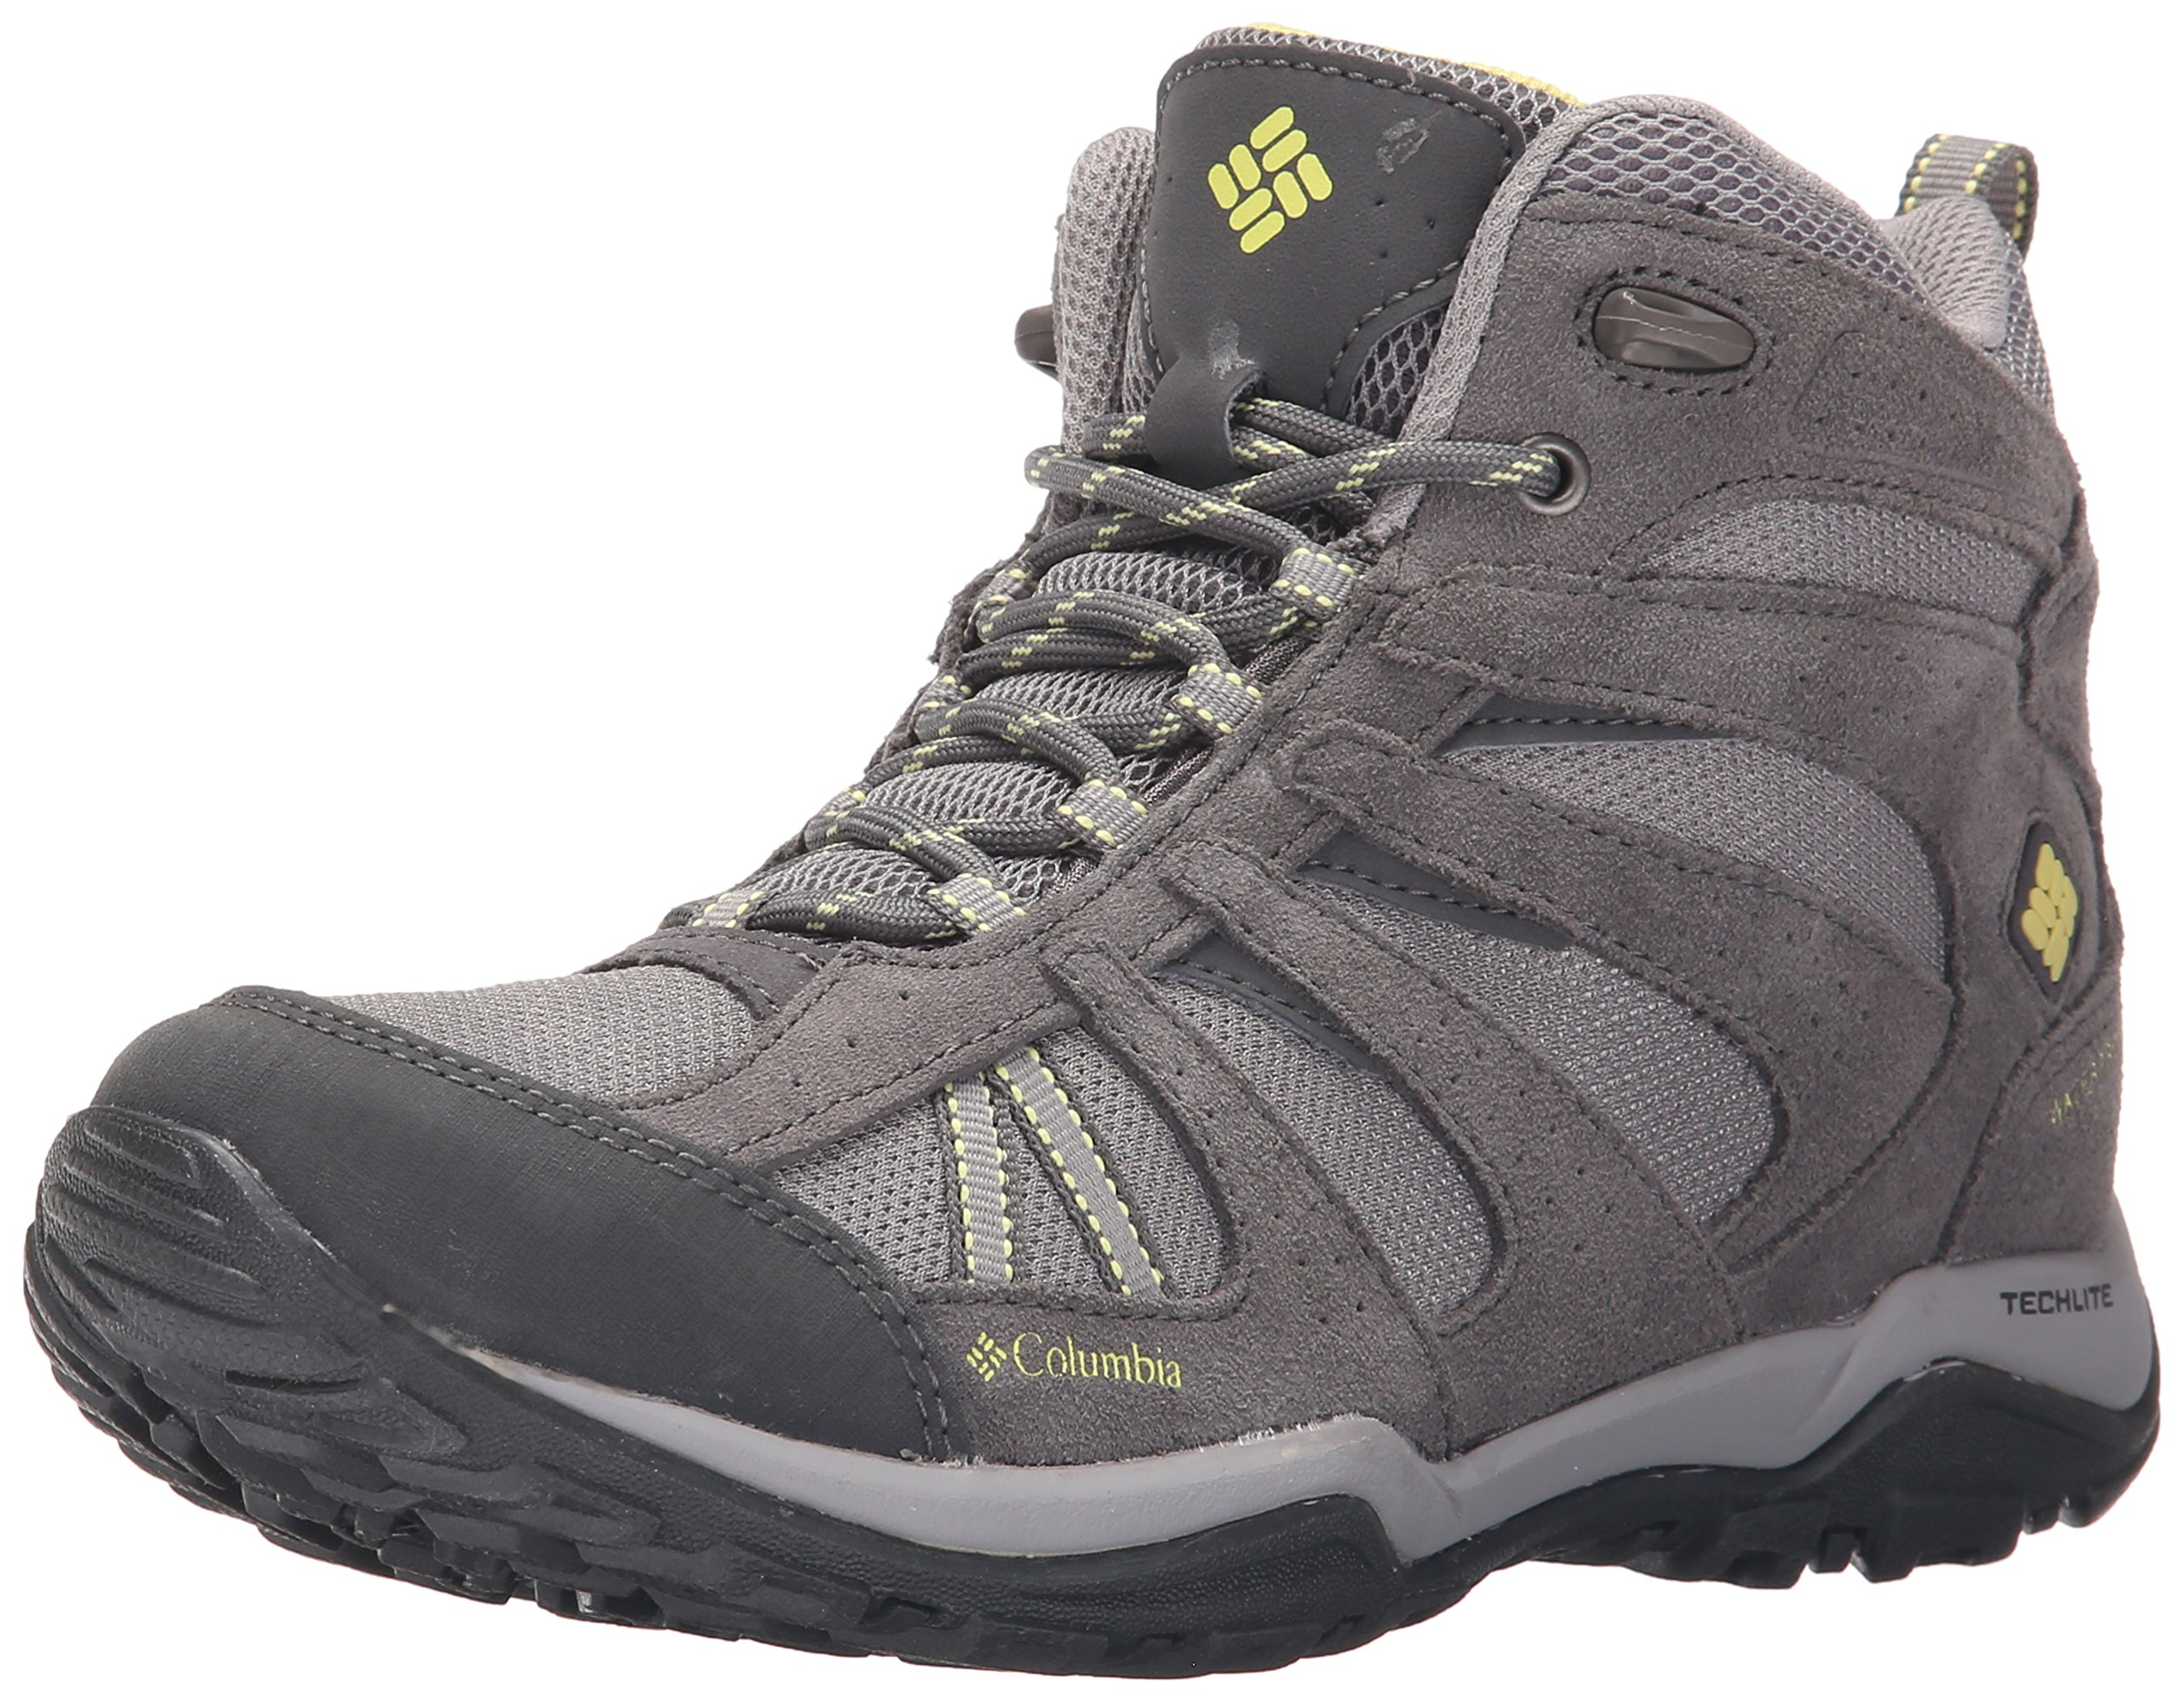 Columbia Women's Dakota Drifter MID Waterproof Hiking Boot, Light Grey, Sunnyside, 9.5 B US by Columbia